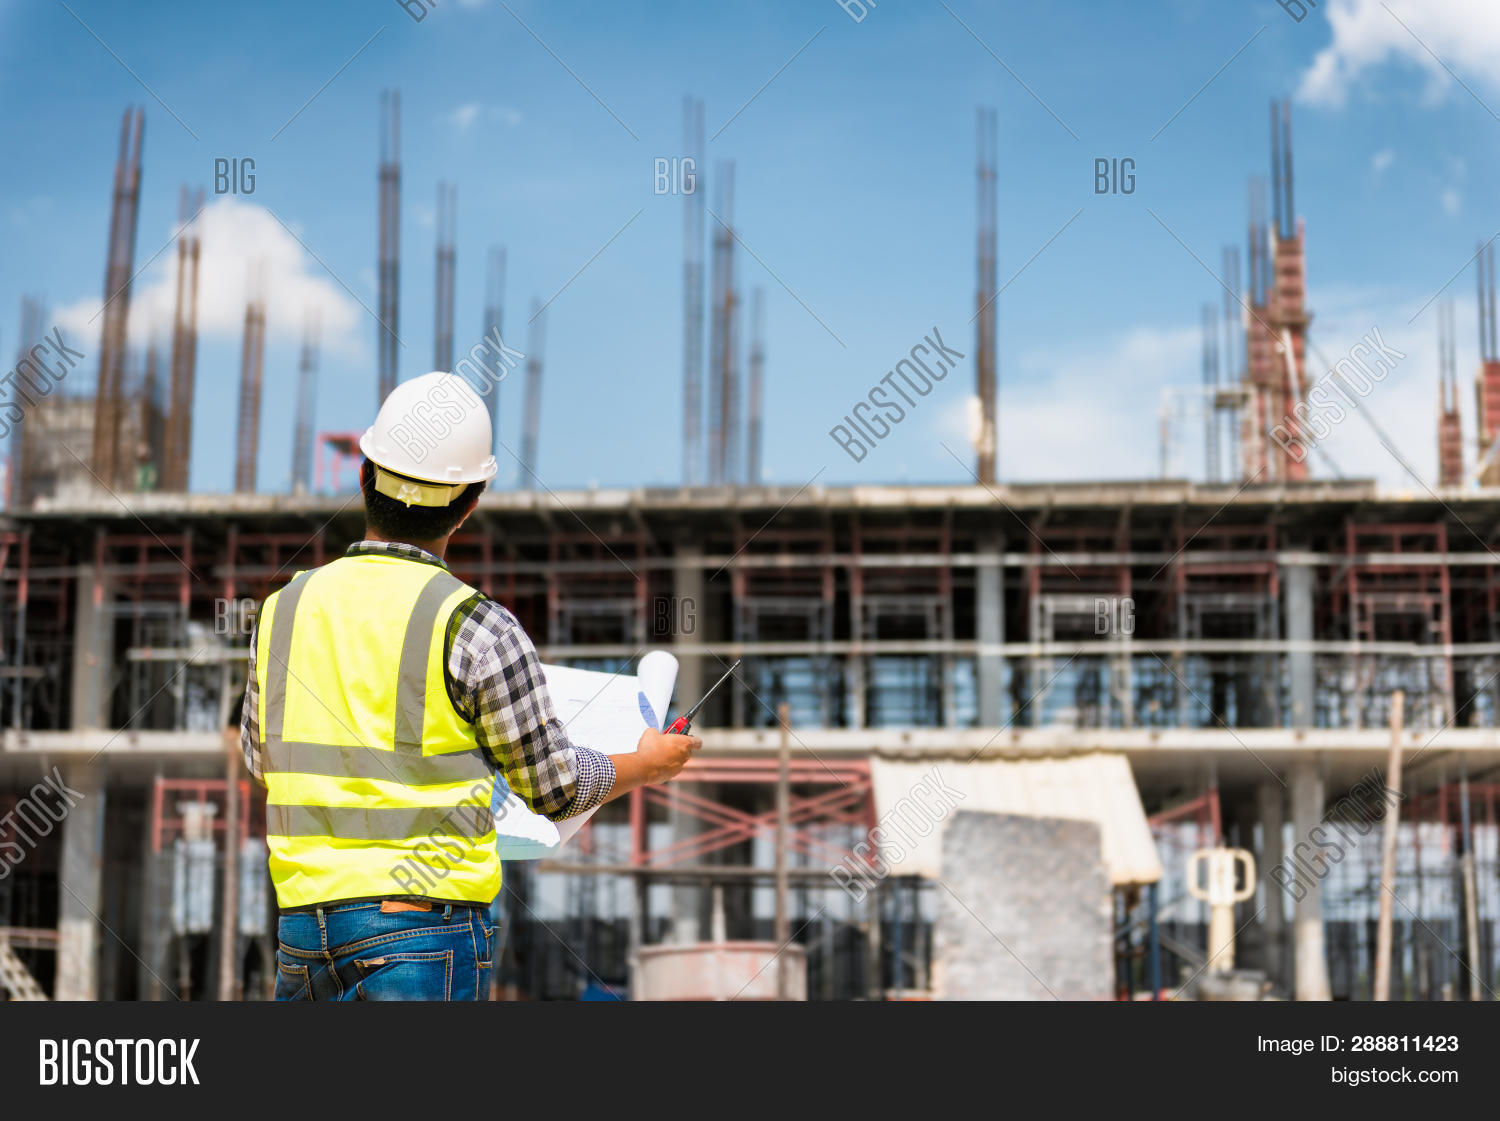 Work,architect,architecture,asian,attractive,builder,building,business,caucasian,civil,concept,construction,contractor,control,corporate,crane,daily,demolition,design,drawing,employee,engineer,engineering,equipment,helmet,indian,industrial,industry,inspecting,job,management,manager,office,outdoors,person,plan,professional,project,renovation,safe,safety,schedule,security,site,successful,targeting,technology,thinking,tower,worker